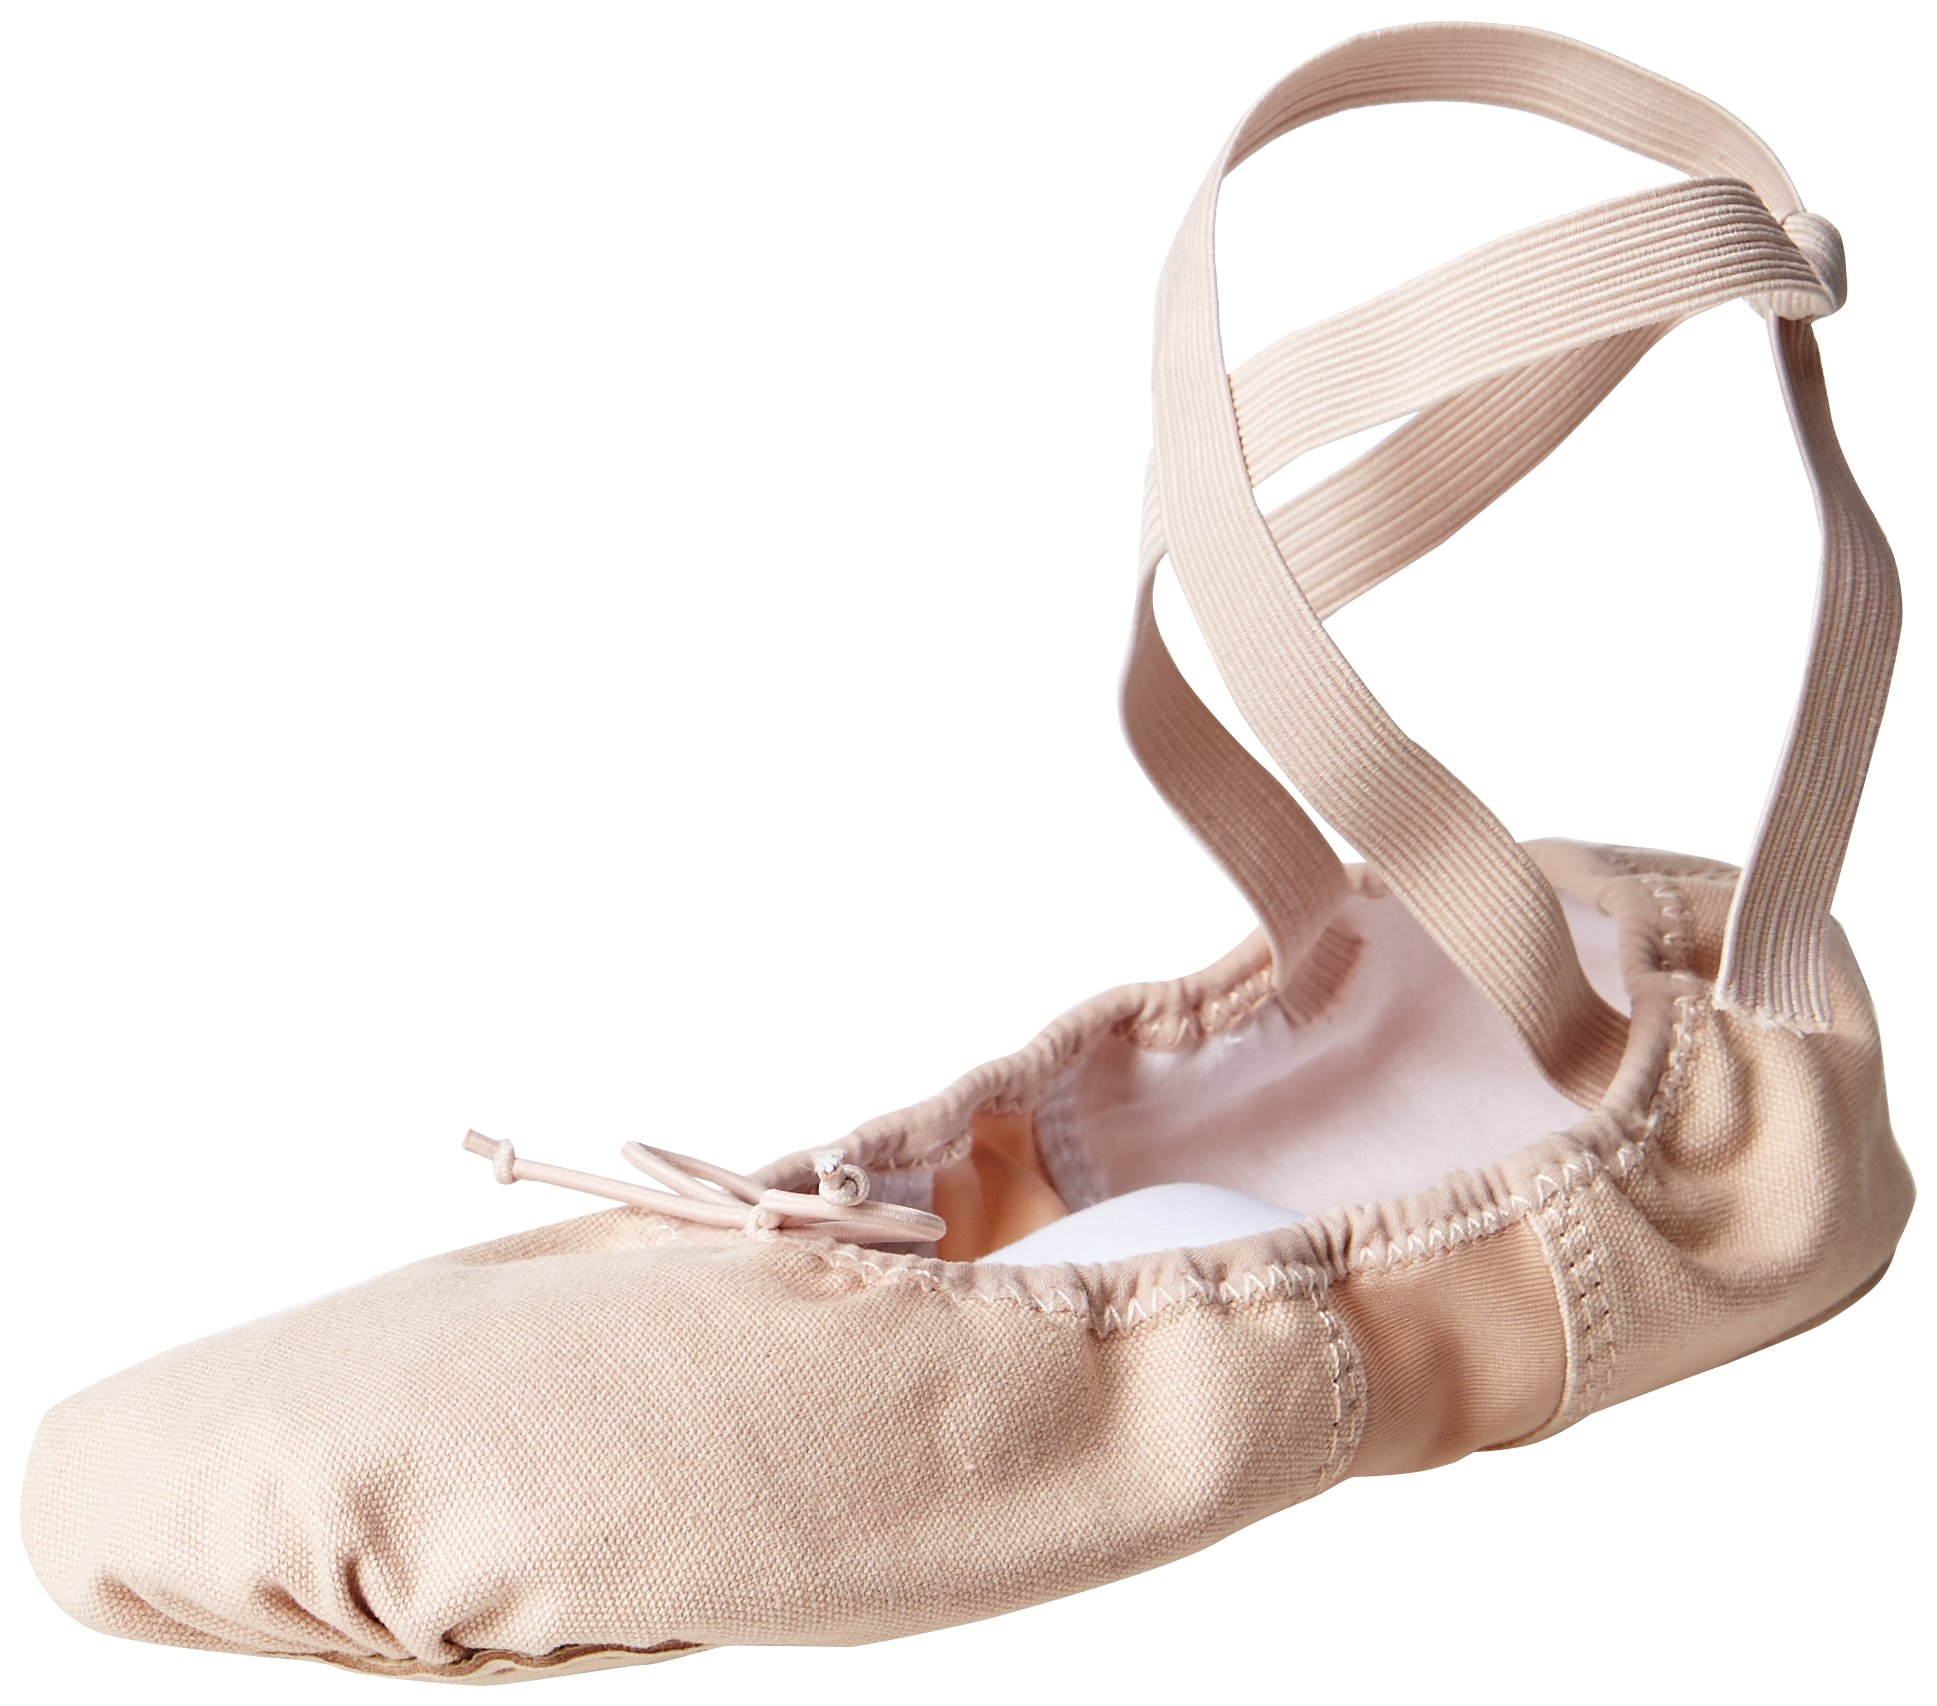 Dance Class CB101 Canvass Ballet Shoe (Toddler/Little Kid),Pink,3 M US Little Kid